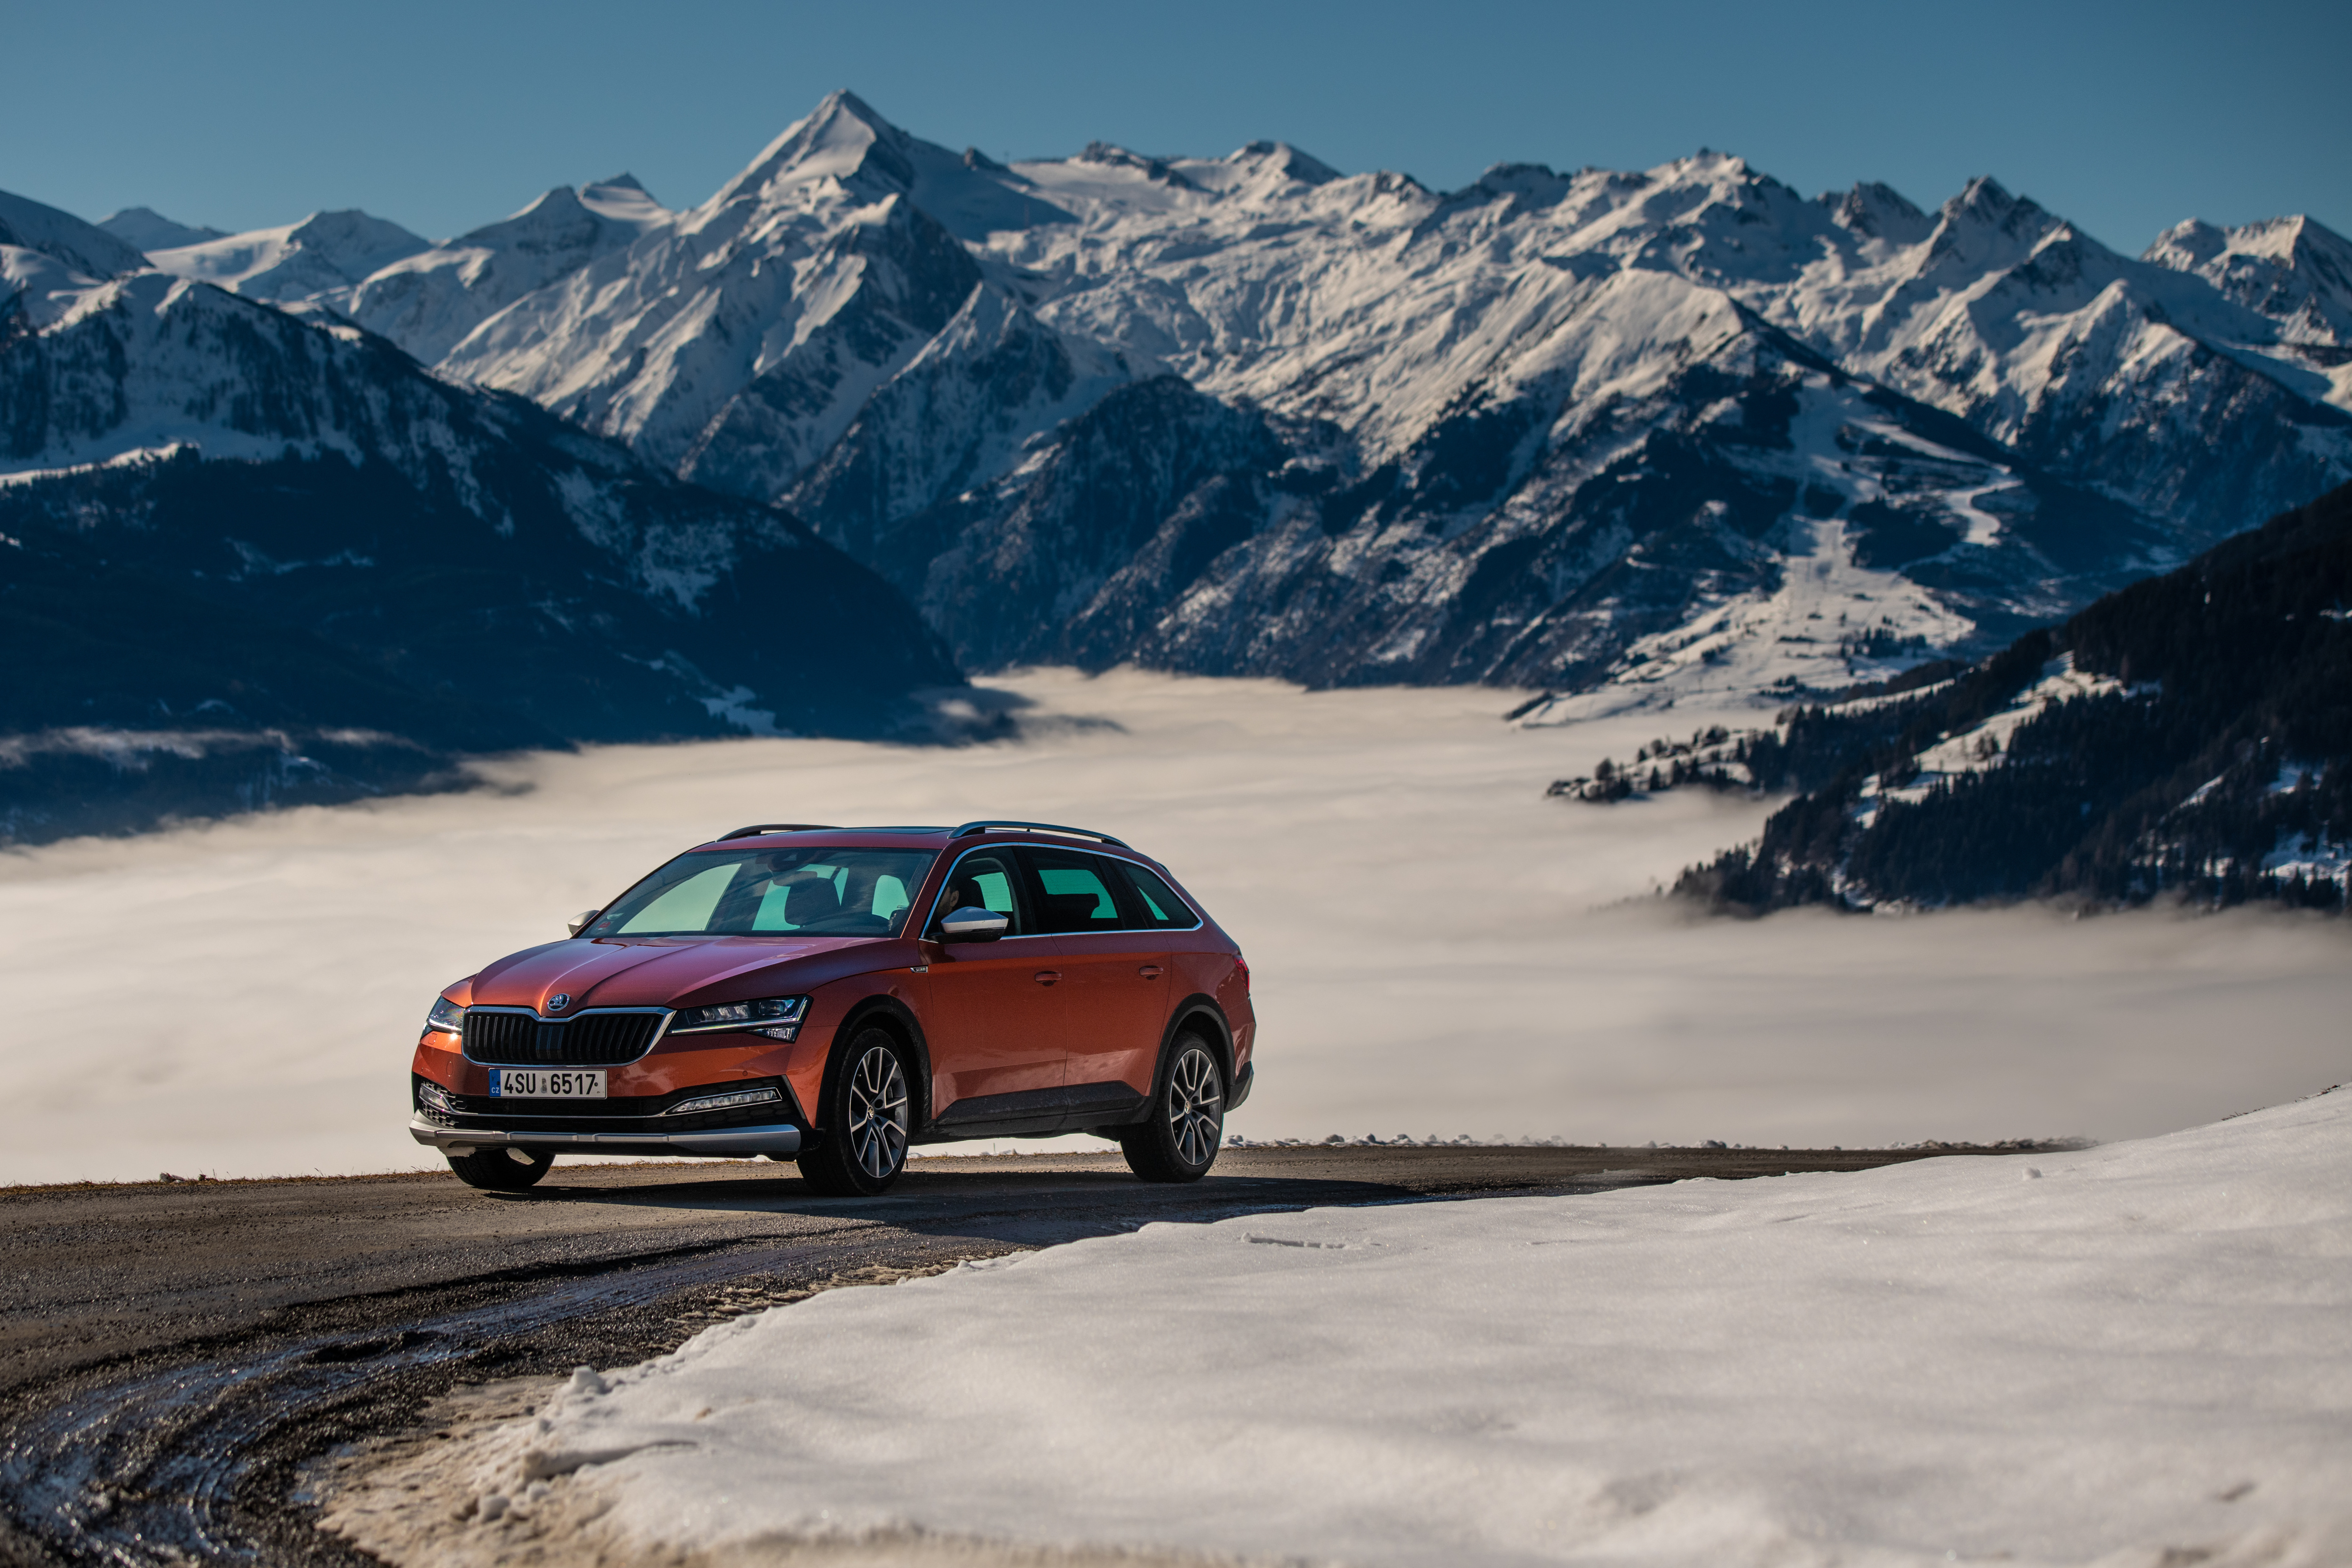 SKODA SUPERB SCOUT: a multifunctional lifestyle estate for any terrain - Image 4